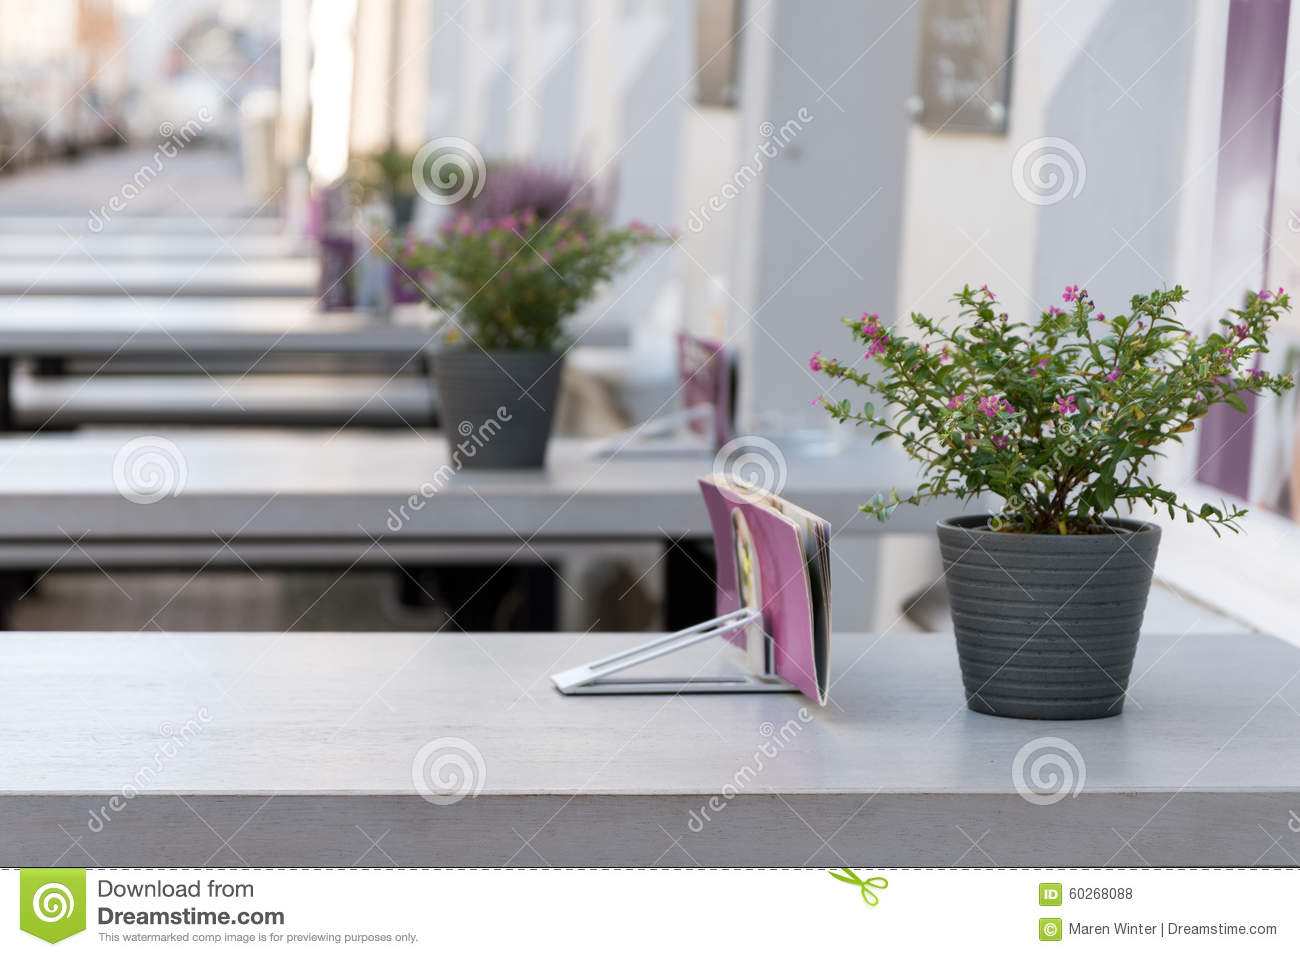 Outdoor Restaurant With Gray Tables And Pink Purple Flower Decor Stock Photo Image Of City Dinner 60268088